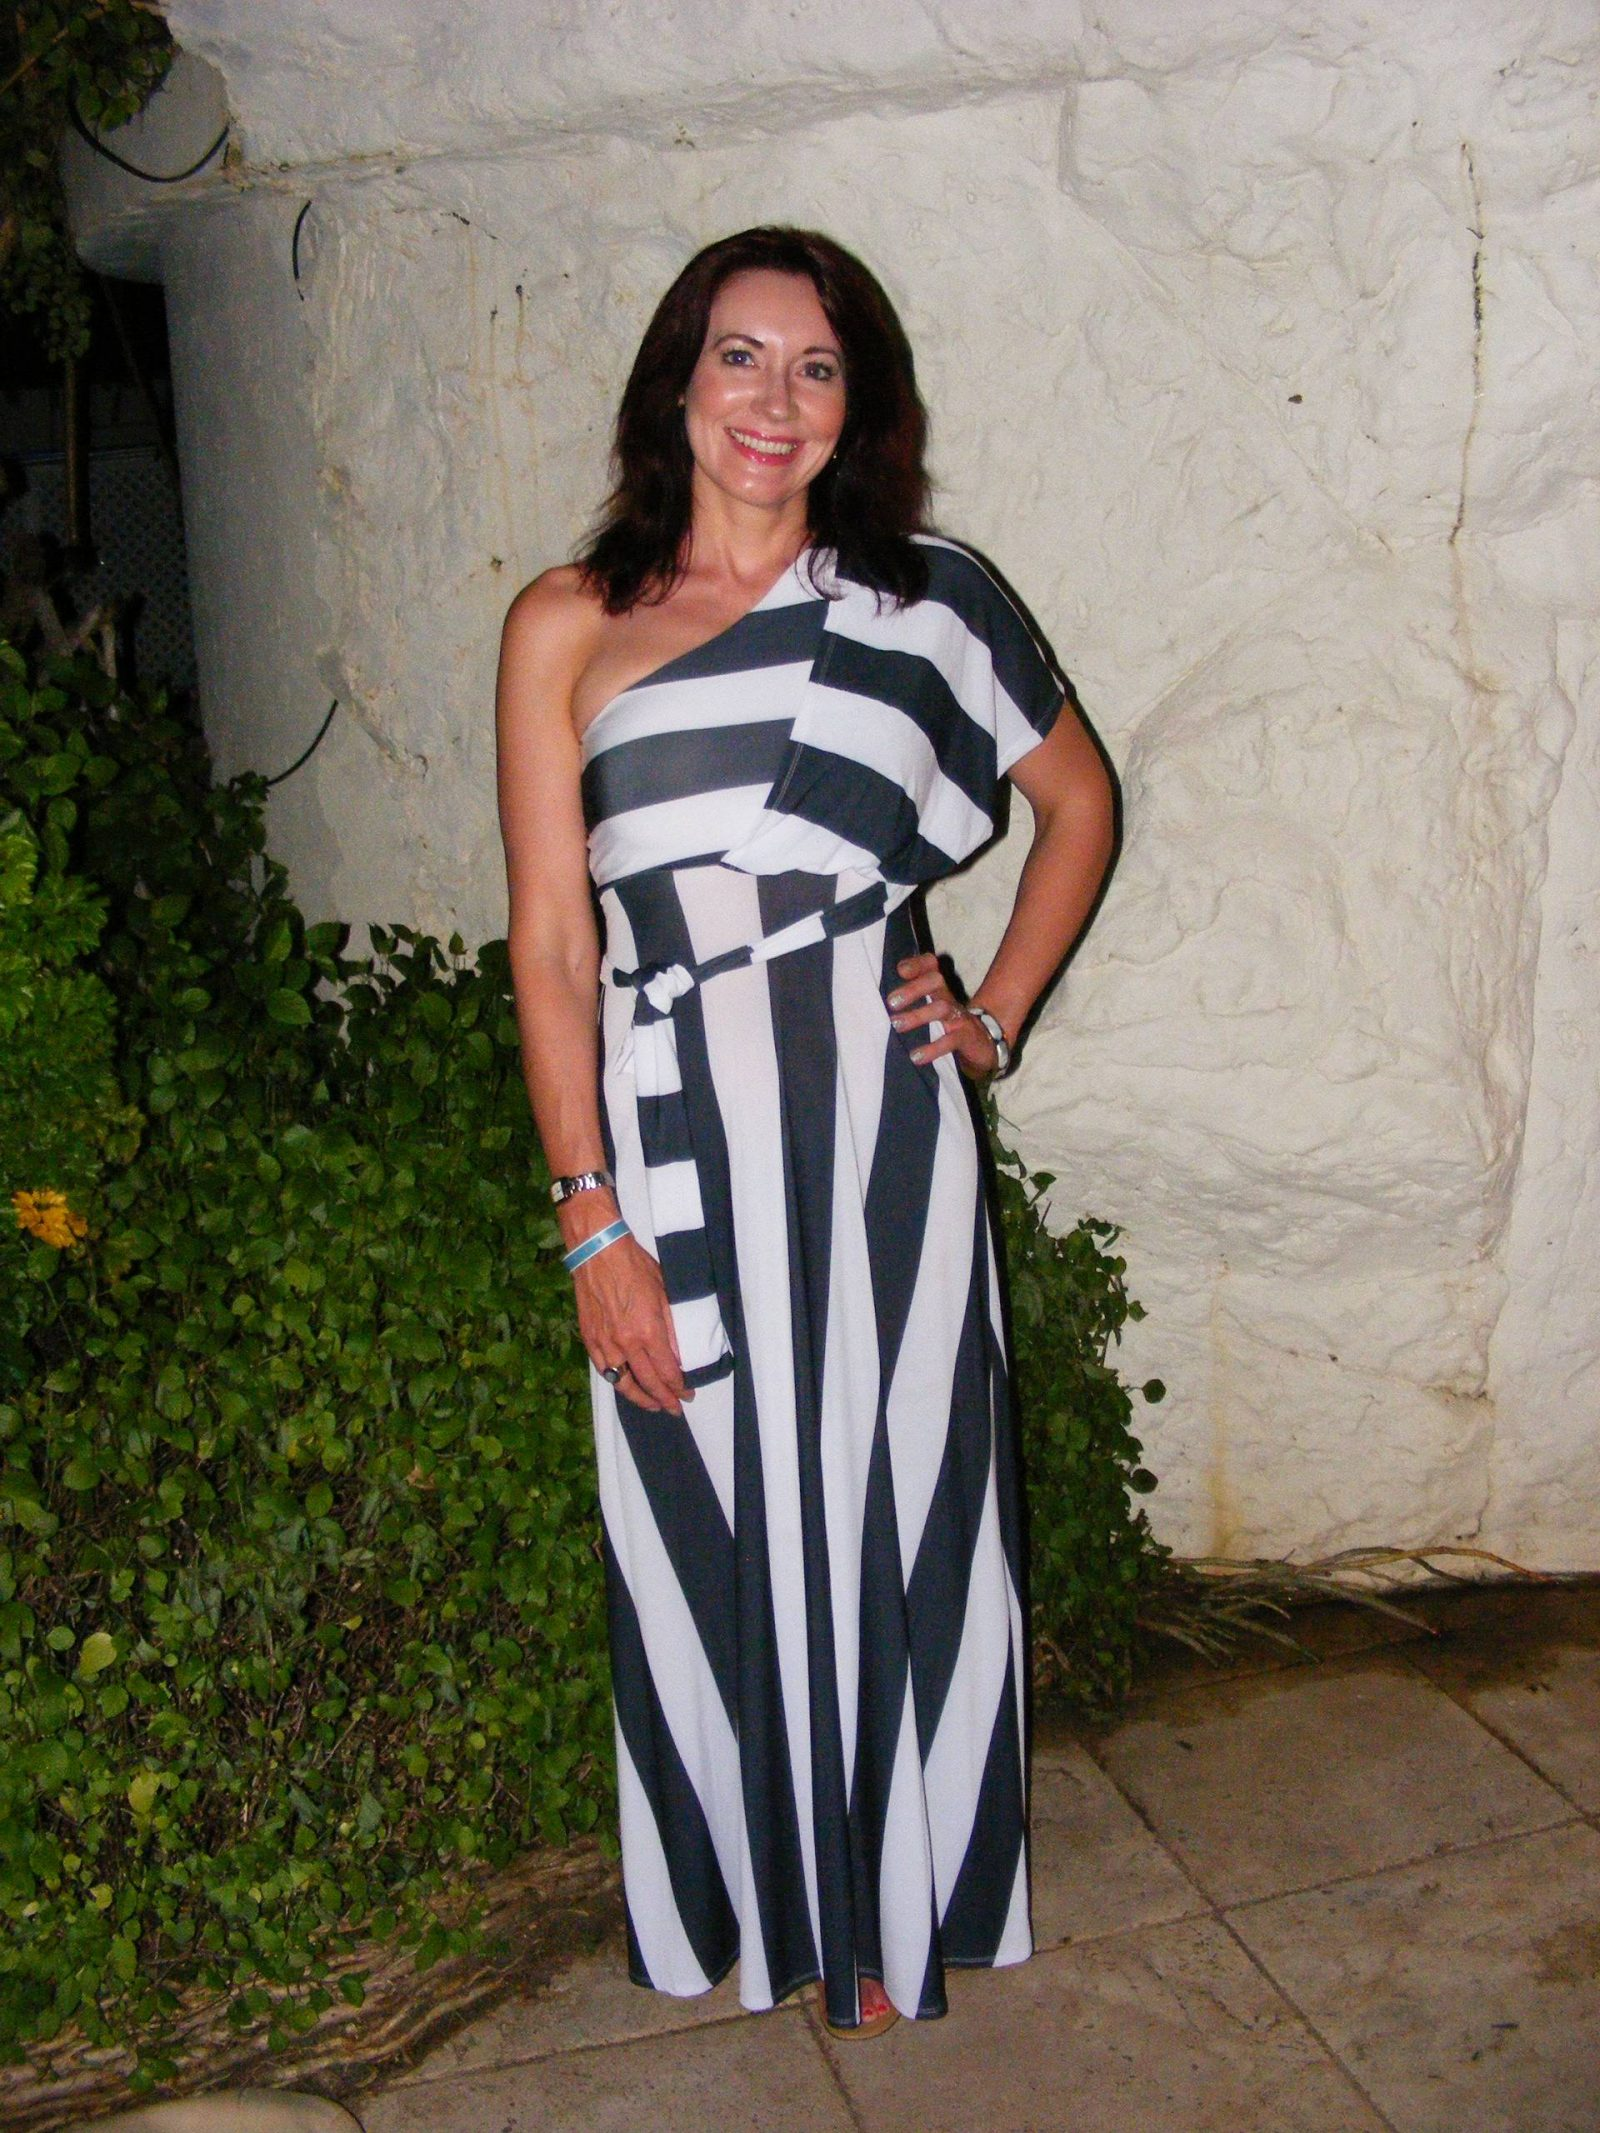 Barbados Holiday Maxi Dresses, black and white striped maxi dress